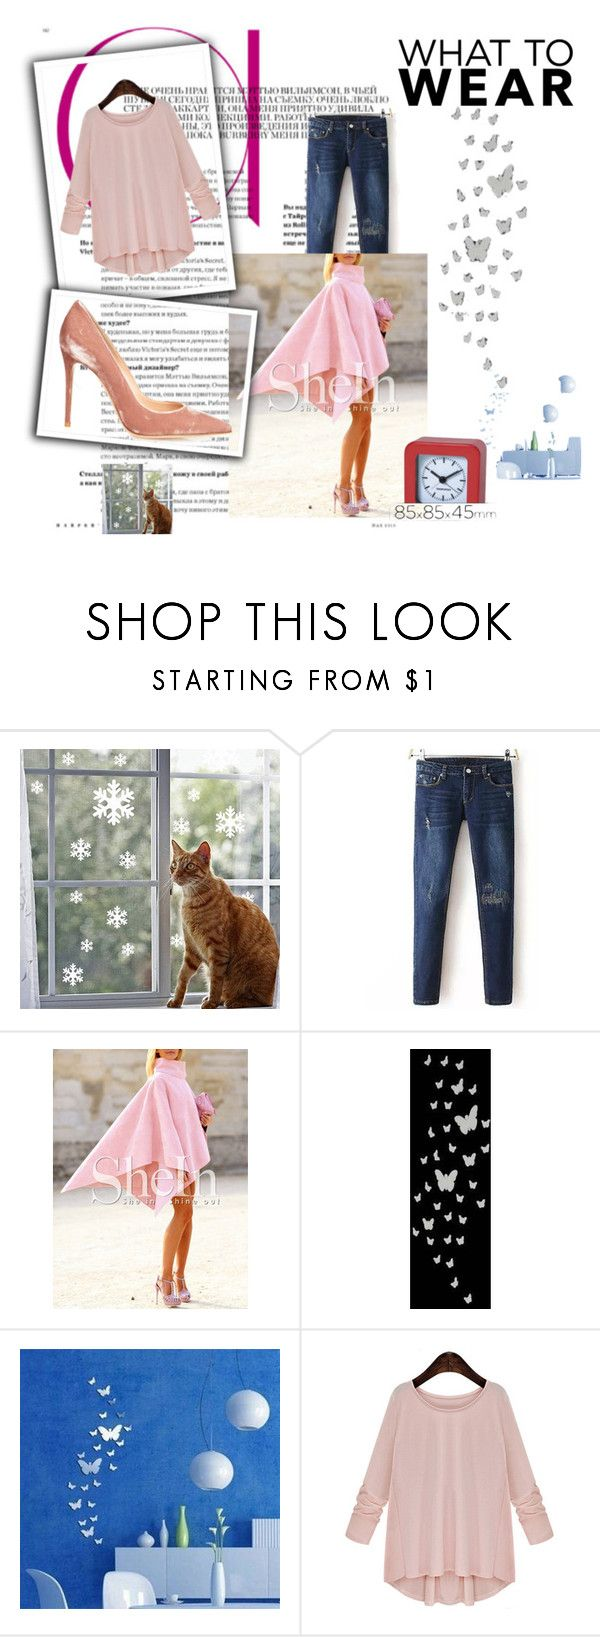 """""""Pinck"""" by lady-shadylady ❤ liked on Polyvore featuring beauty and Gianvito Rossi"""